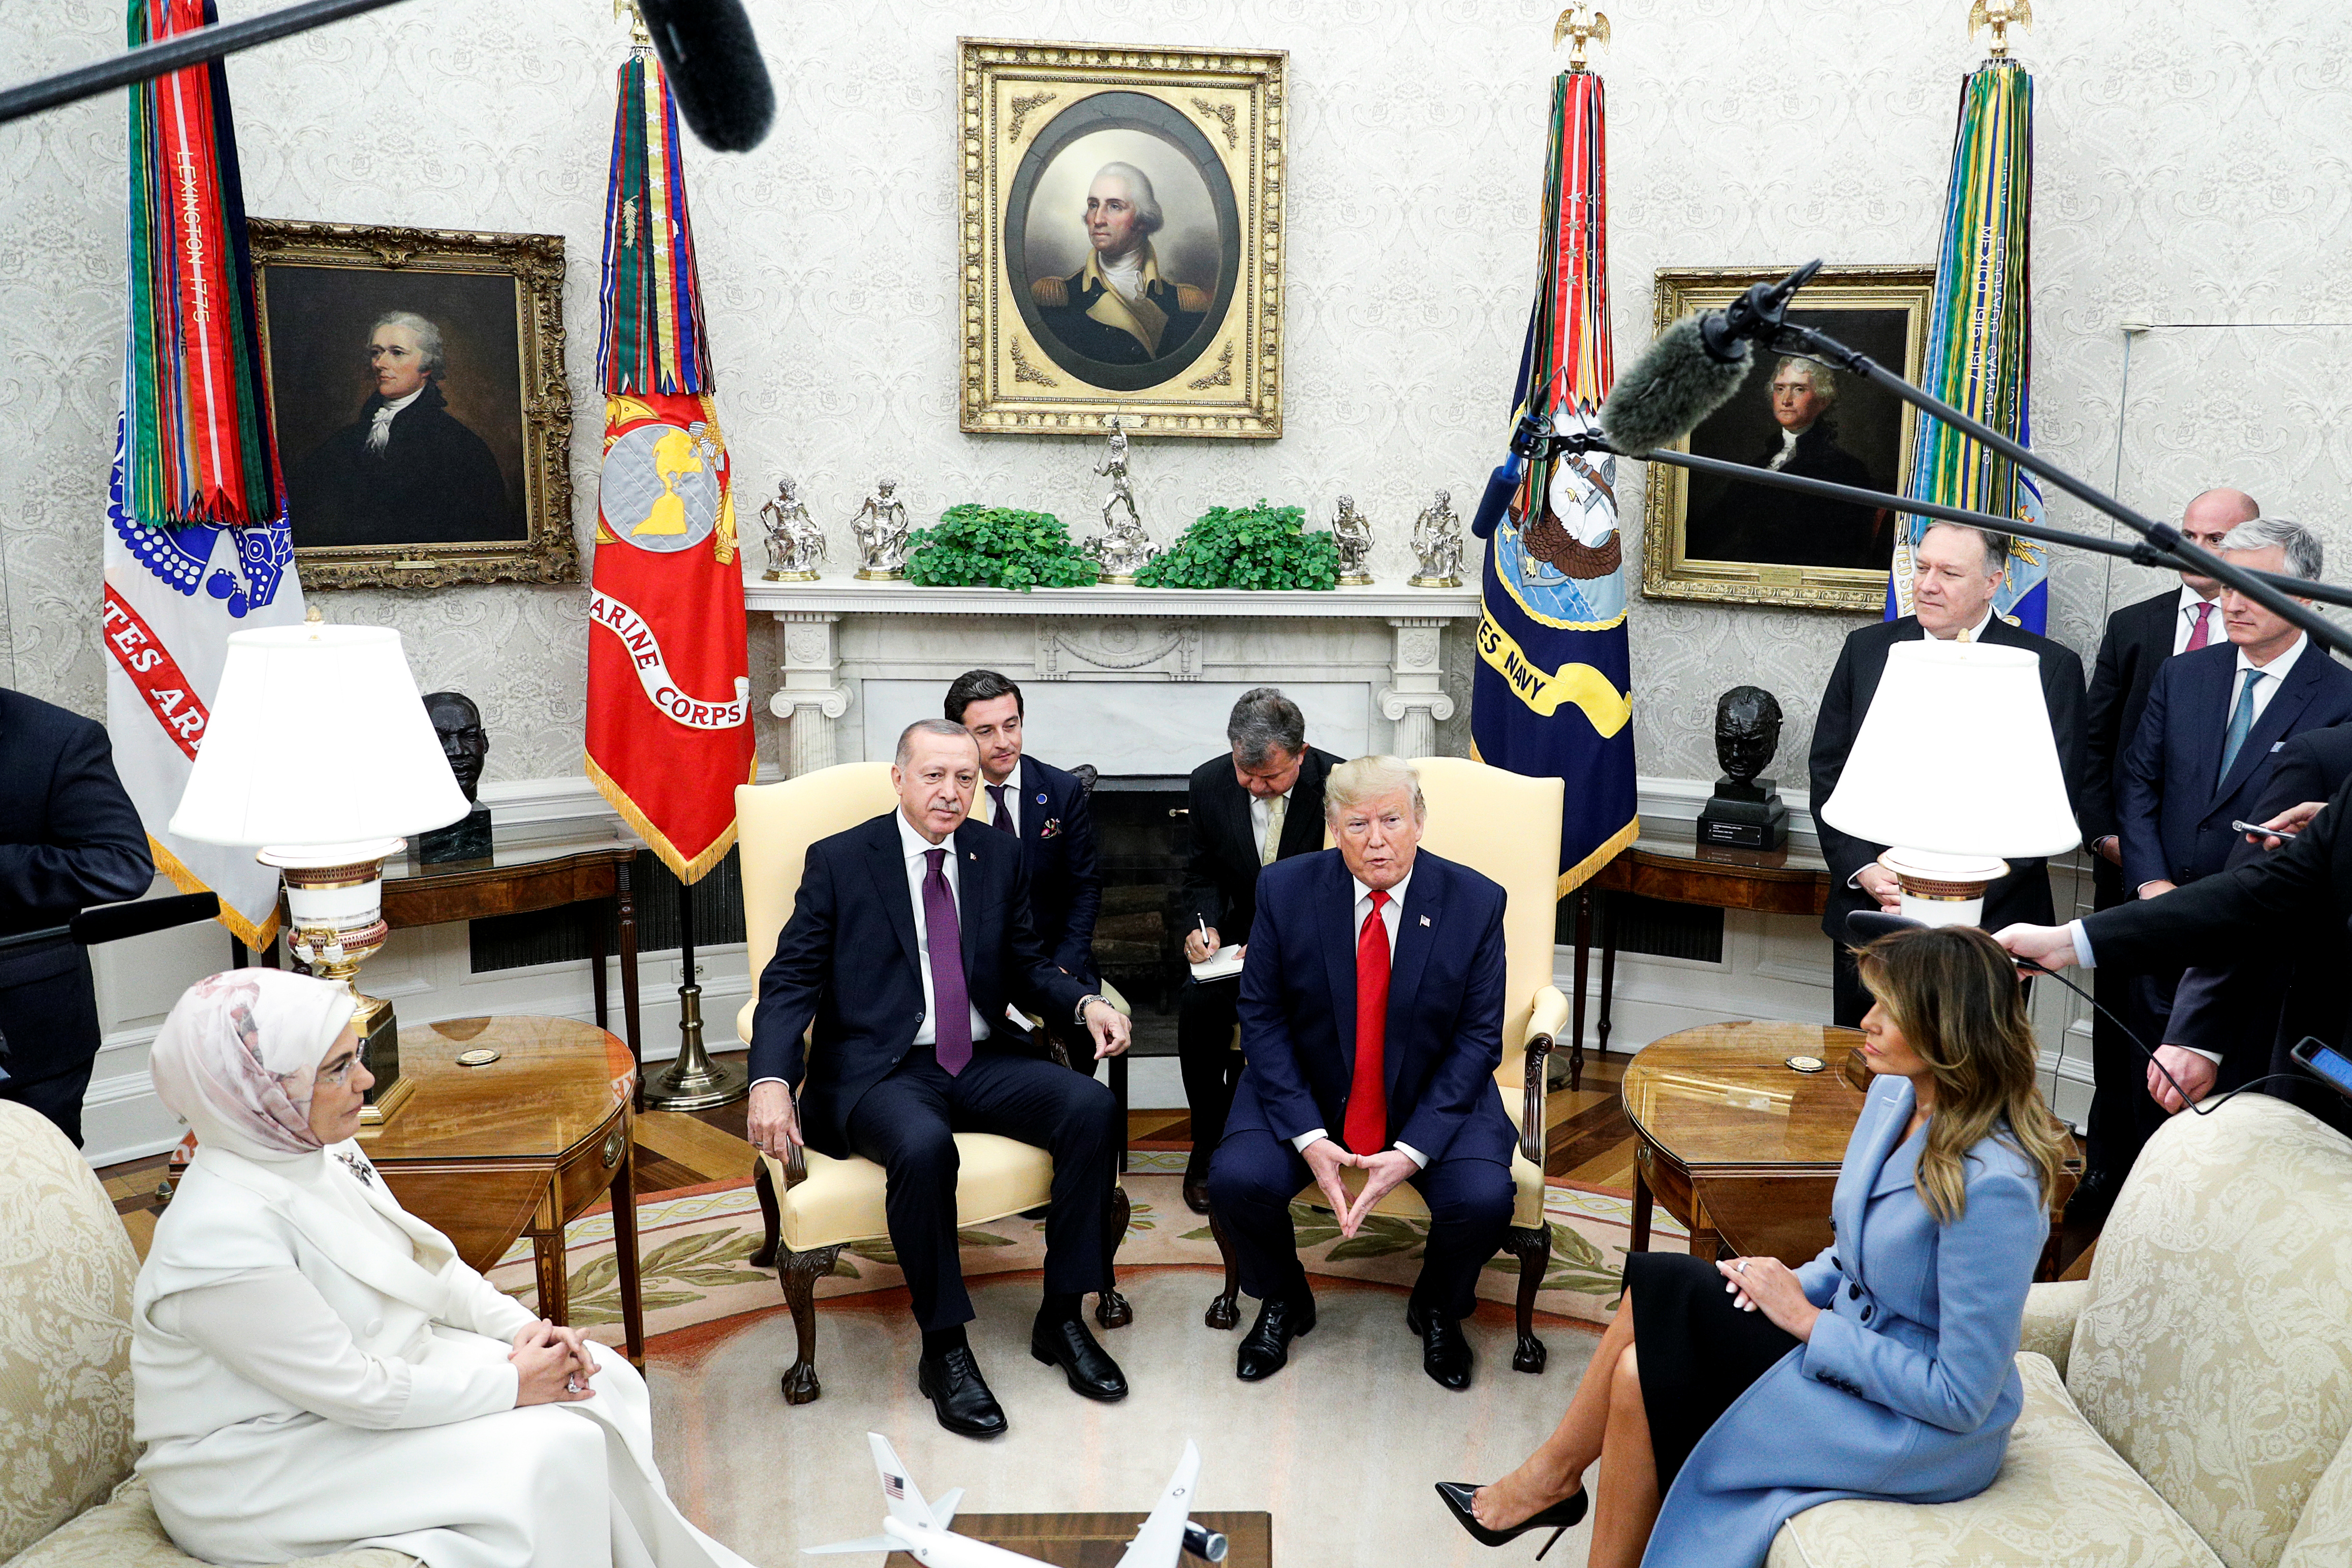 US President Donald Trump and first lady Melania Trump meet with Turkey's President Tayyip Erdogan and Emine Erdogan in the Oval Office of the White House in Washington, D.C., on November 13, 2019.